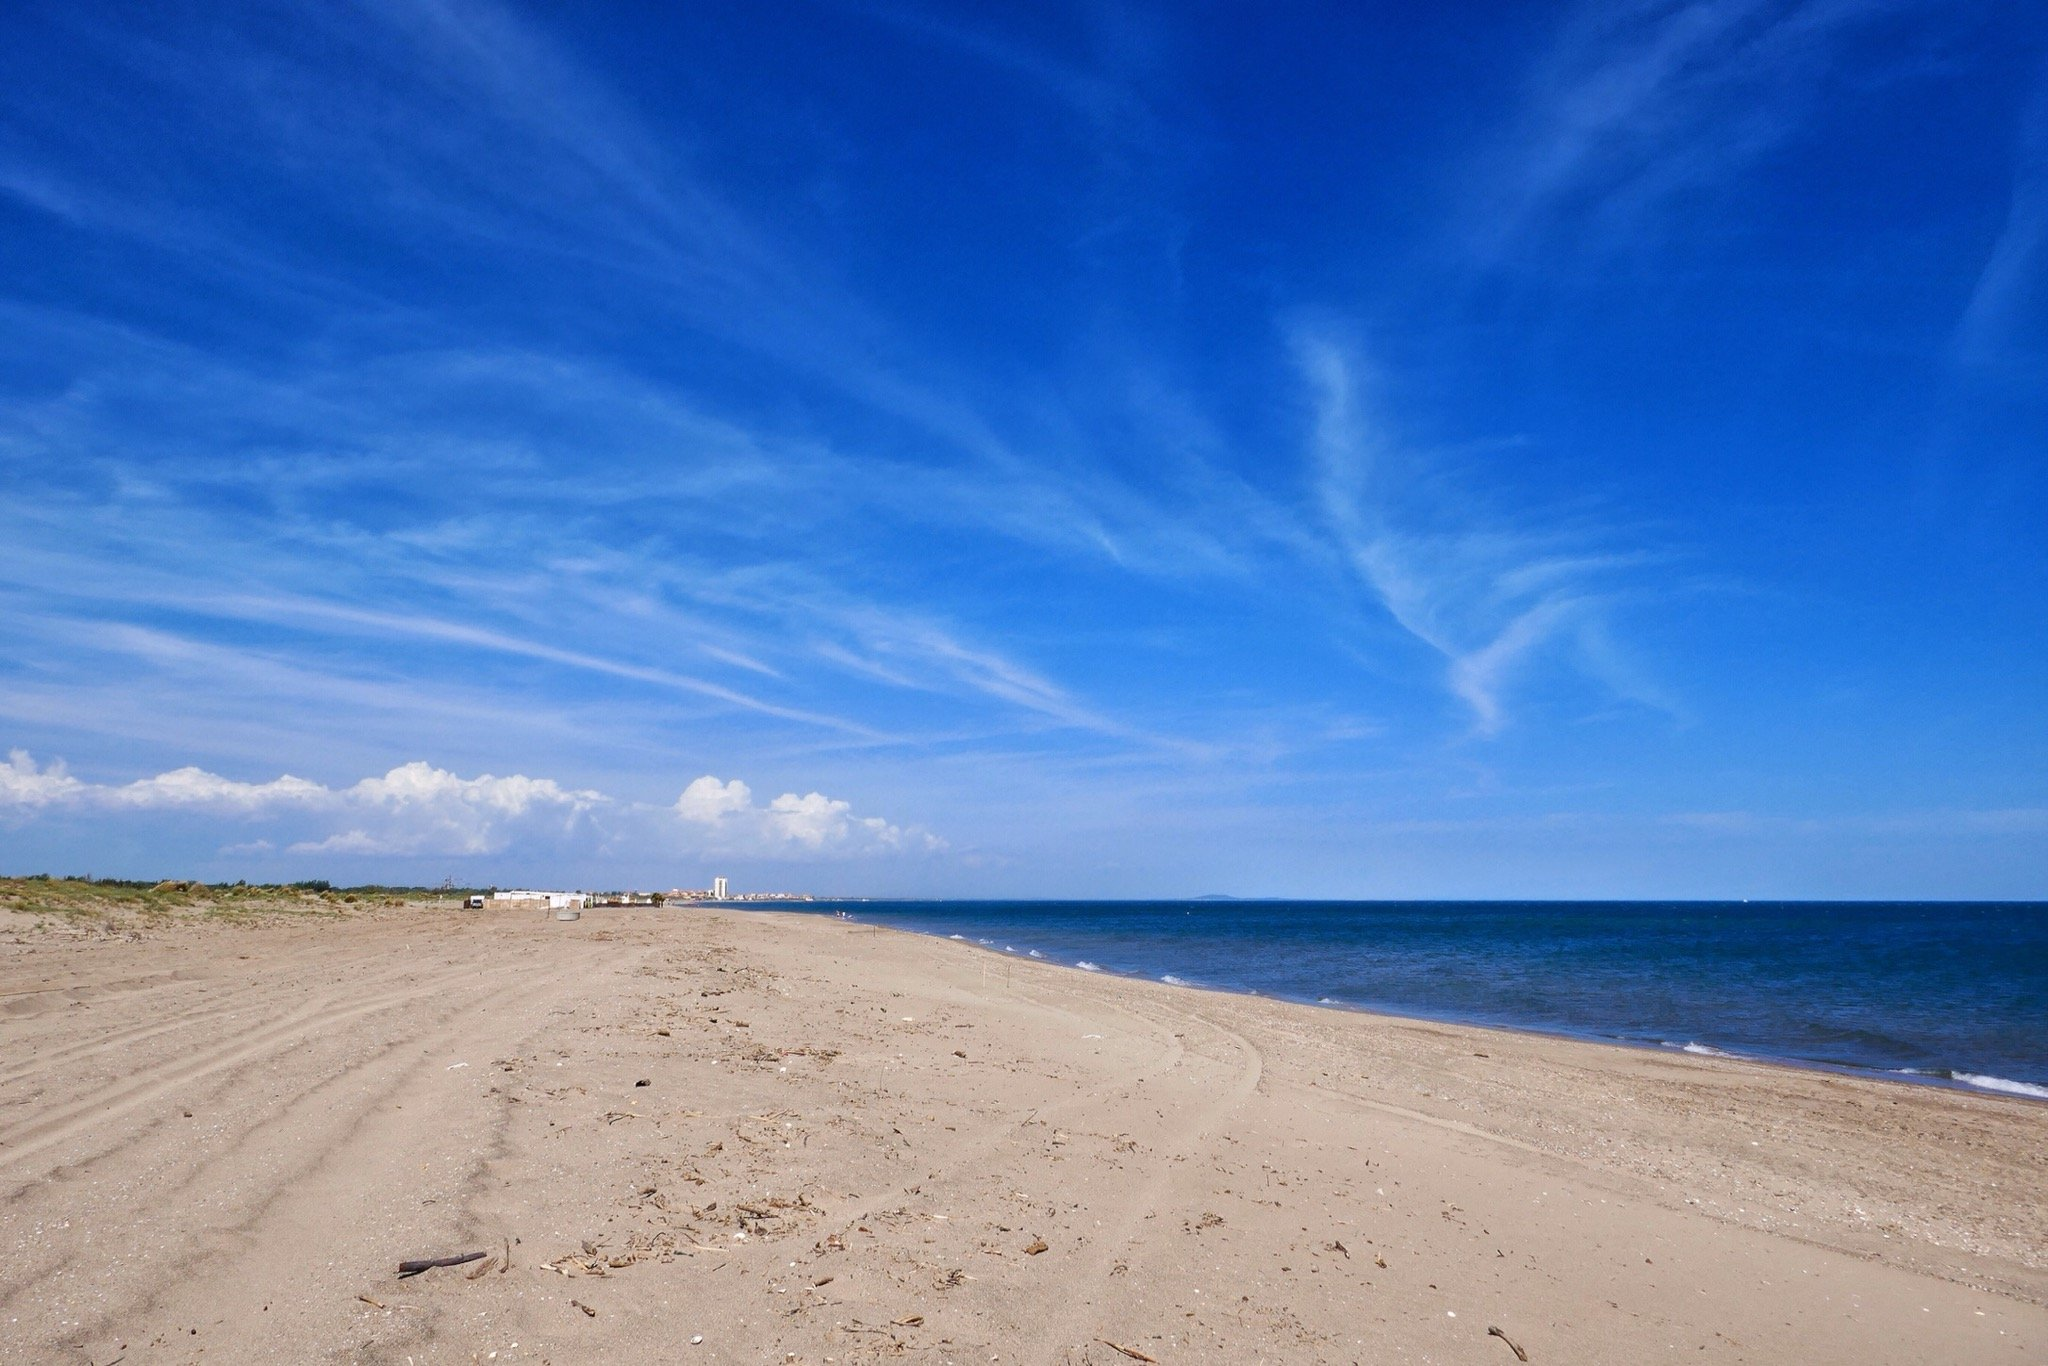 A view of Beach and sky with Valras Plage on the horizon. Near Blue Bayou., Valras Plage, France.